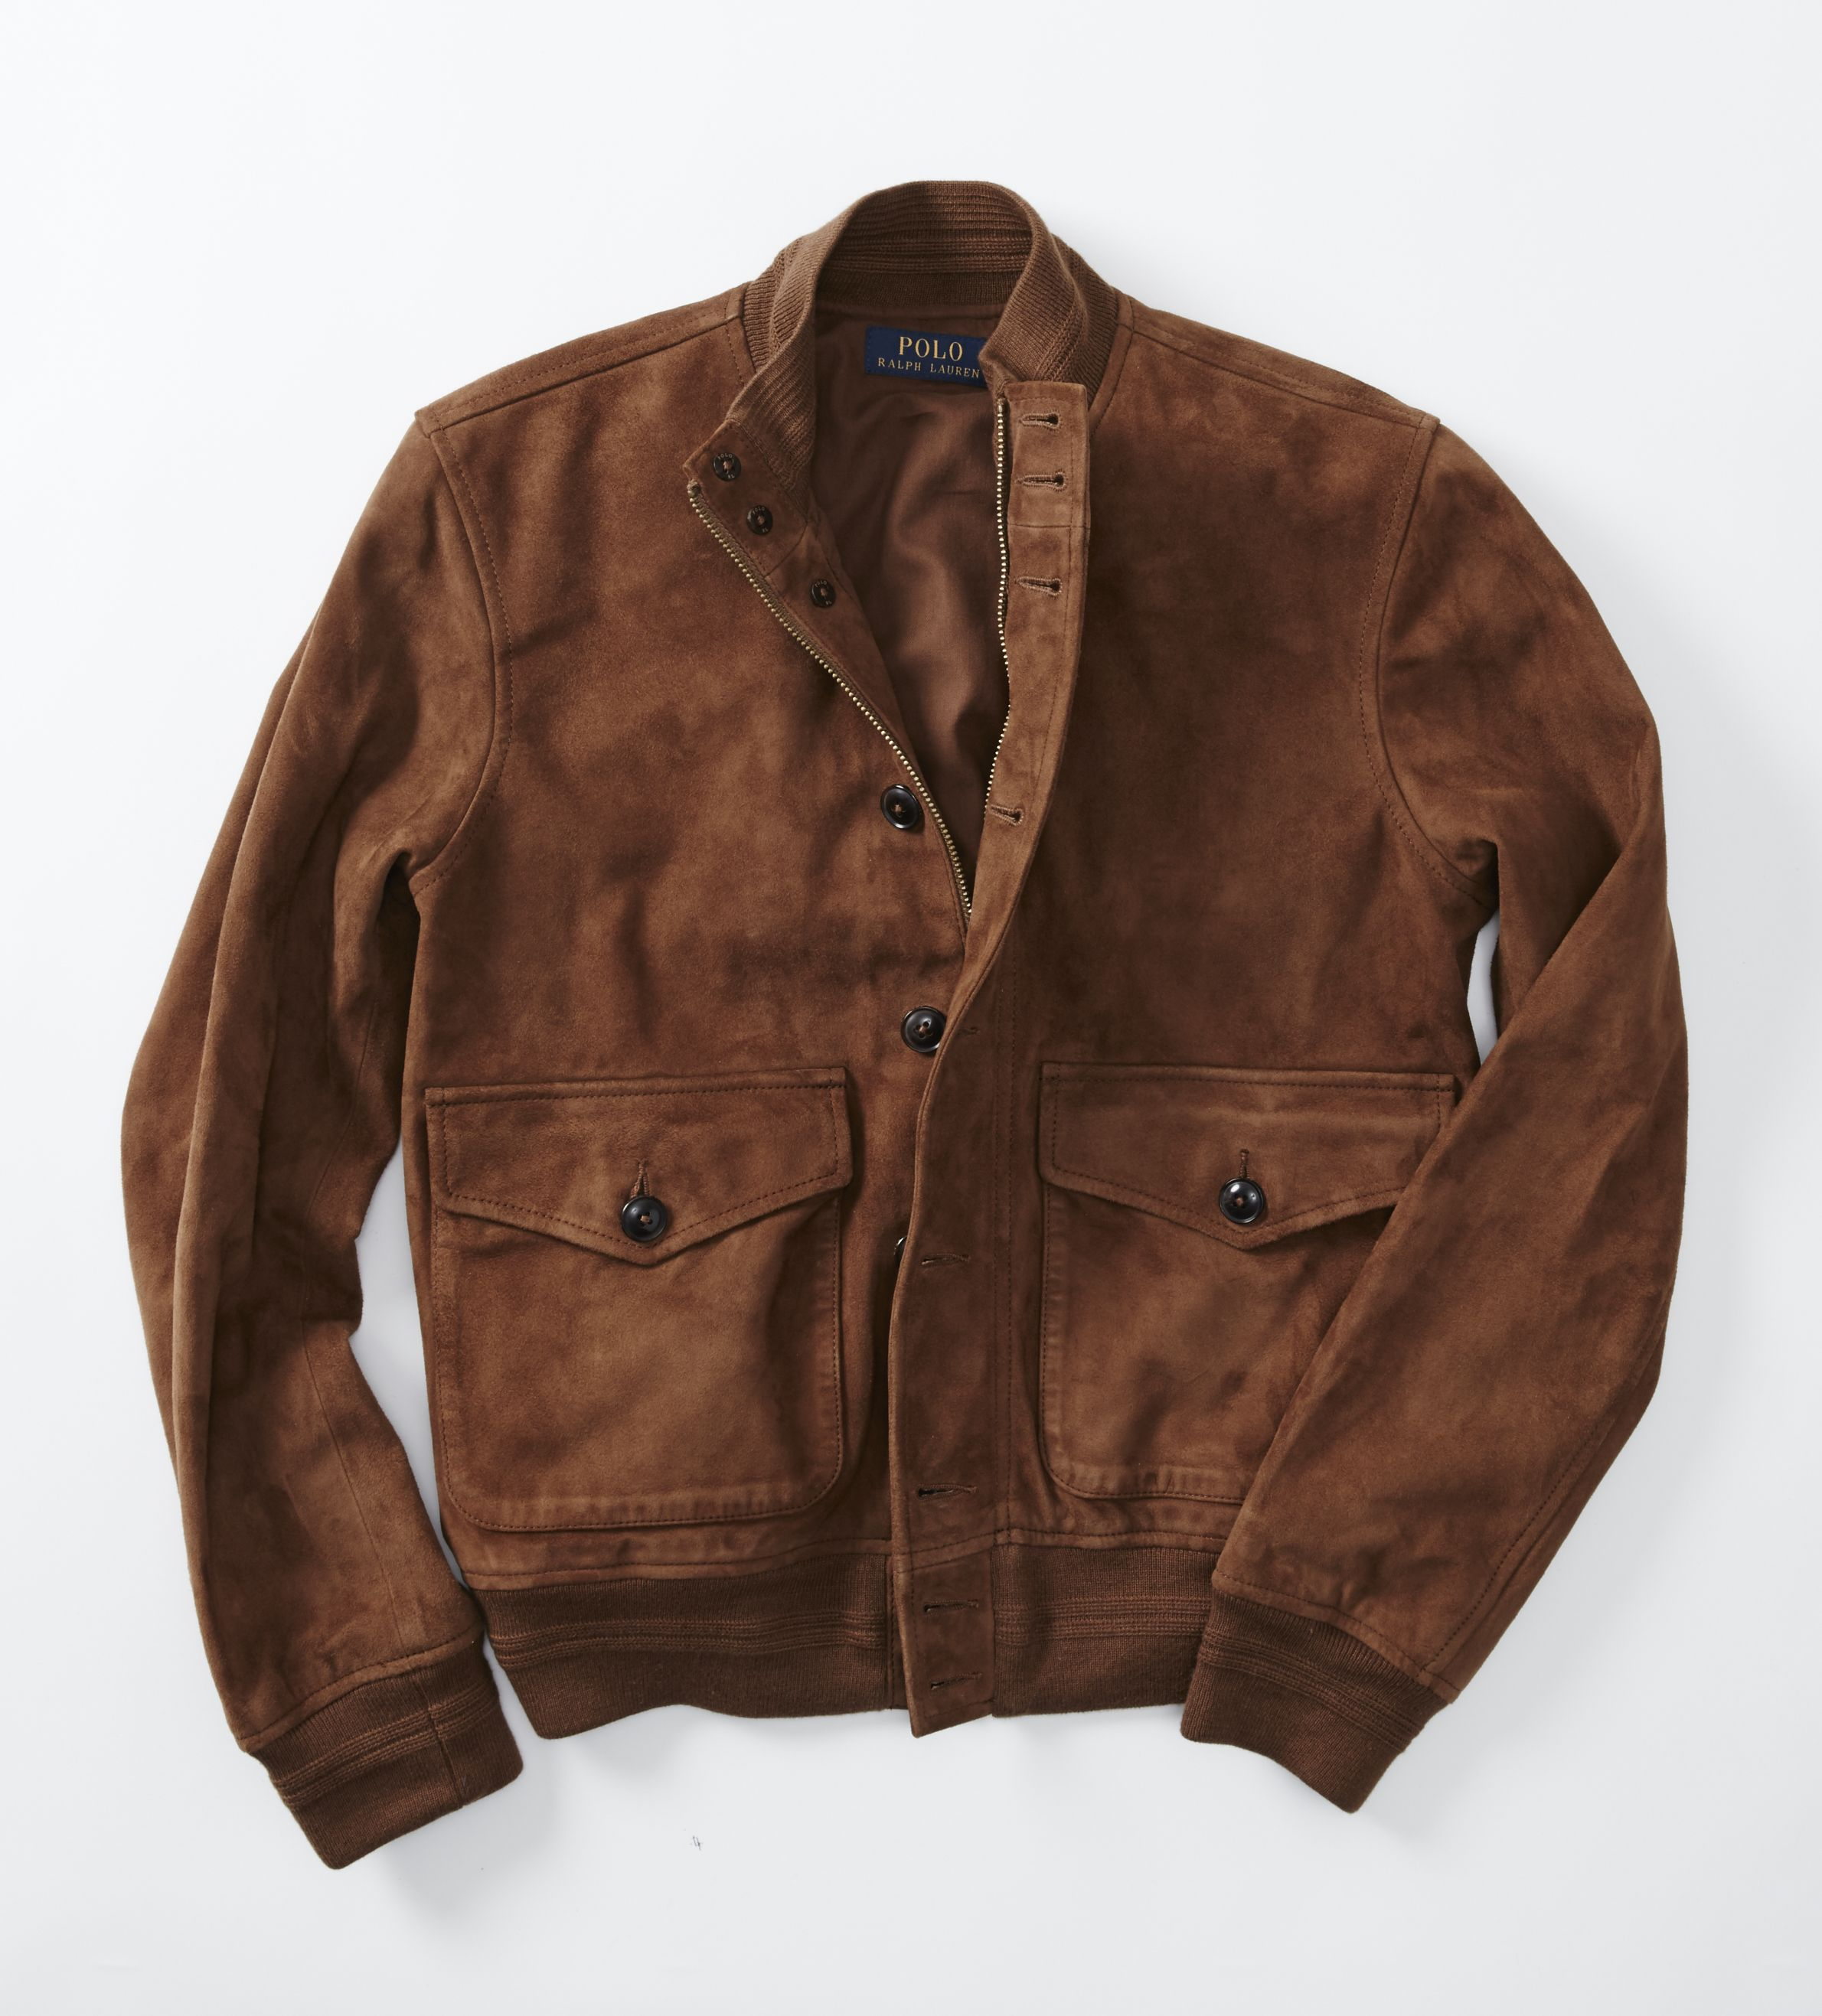 Polo Suede Jacket Ralph Lauren Workwear Vintage Mens Outfits Men S Coats And Jackets [ 2634 x 2380 Pixel ]